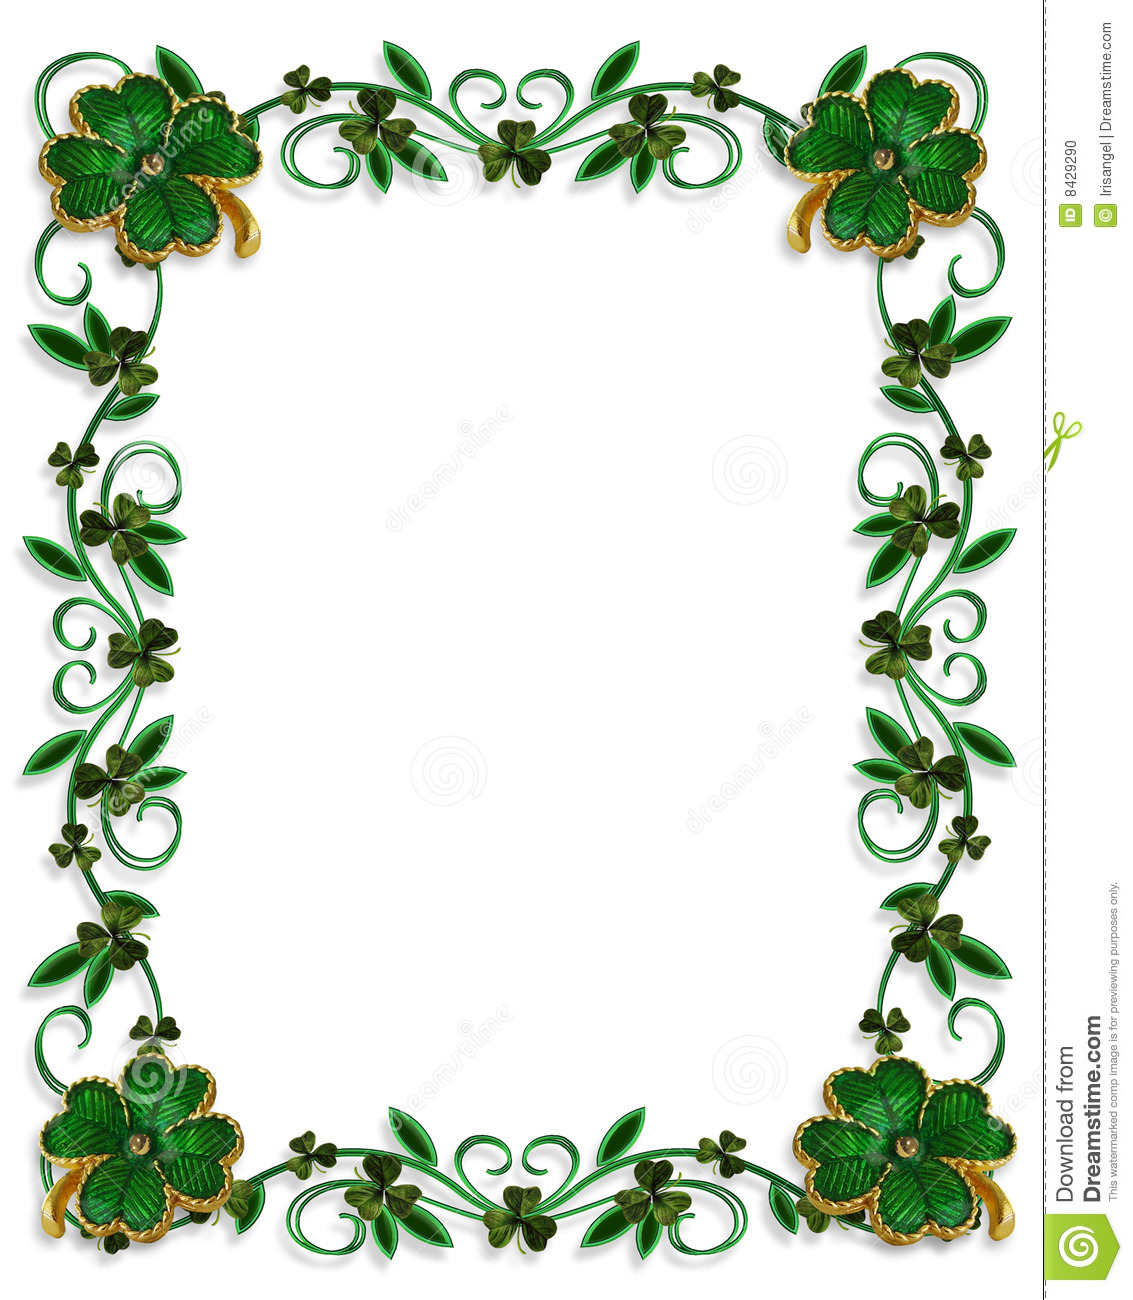 FREE St. Patrick's Day Printable Writing Paper with Clover ... |St Patricks Border